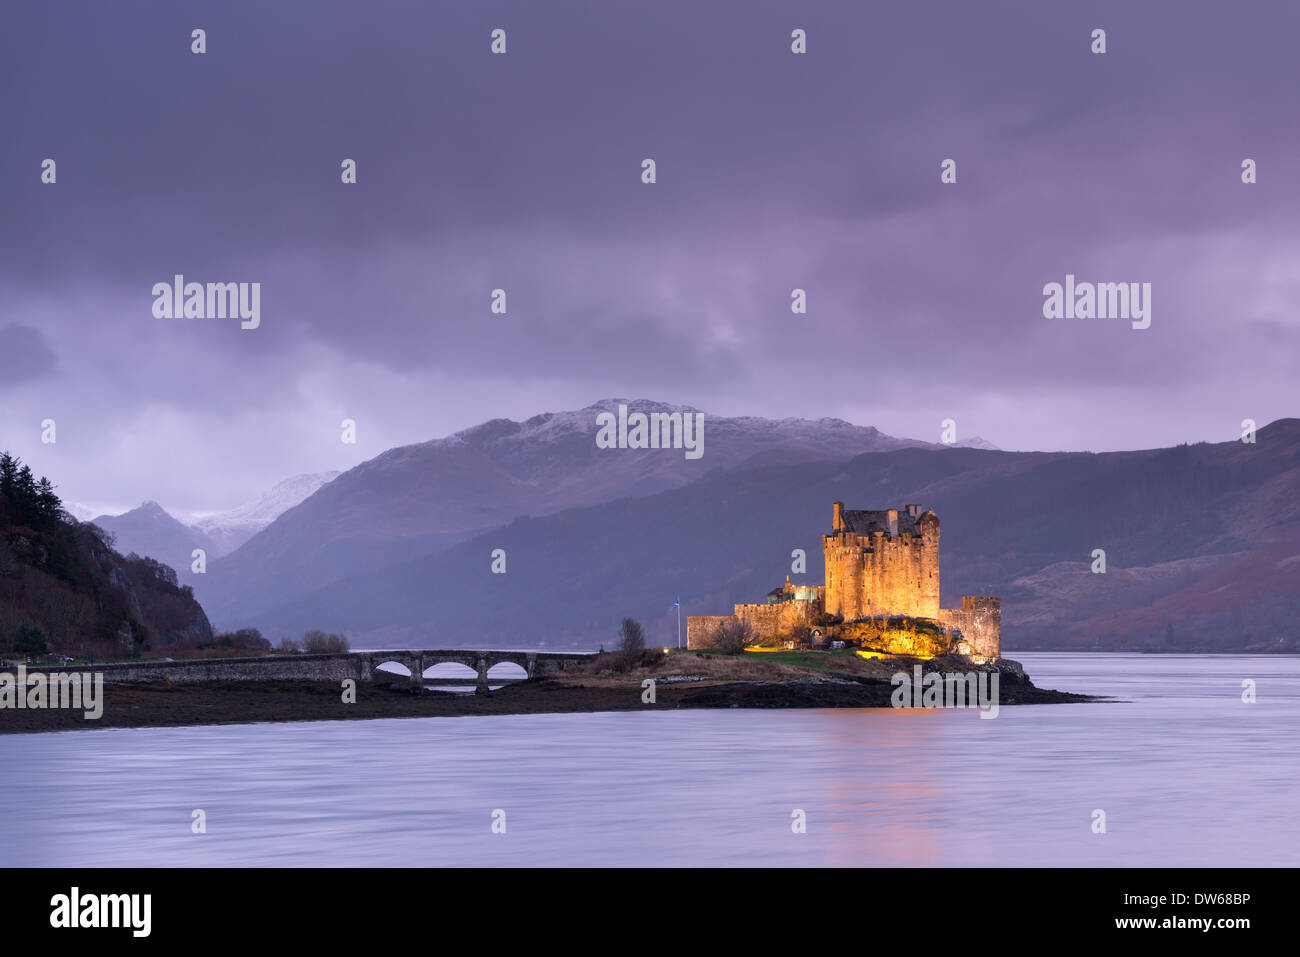 Twilight over Eilean Donan Castle on Loch Duich, Dornie, Scotland. Winter (December) 2013. - Stock Image